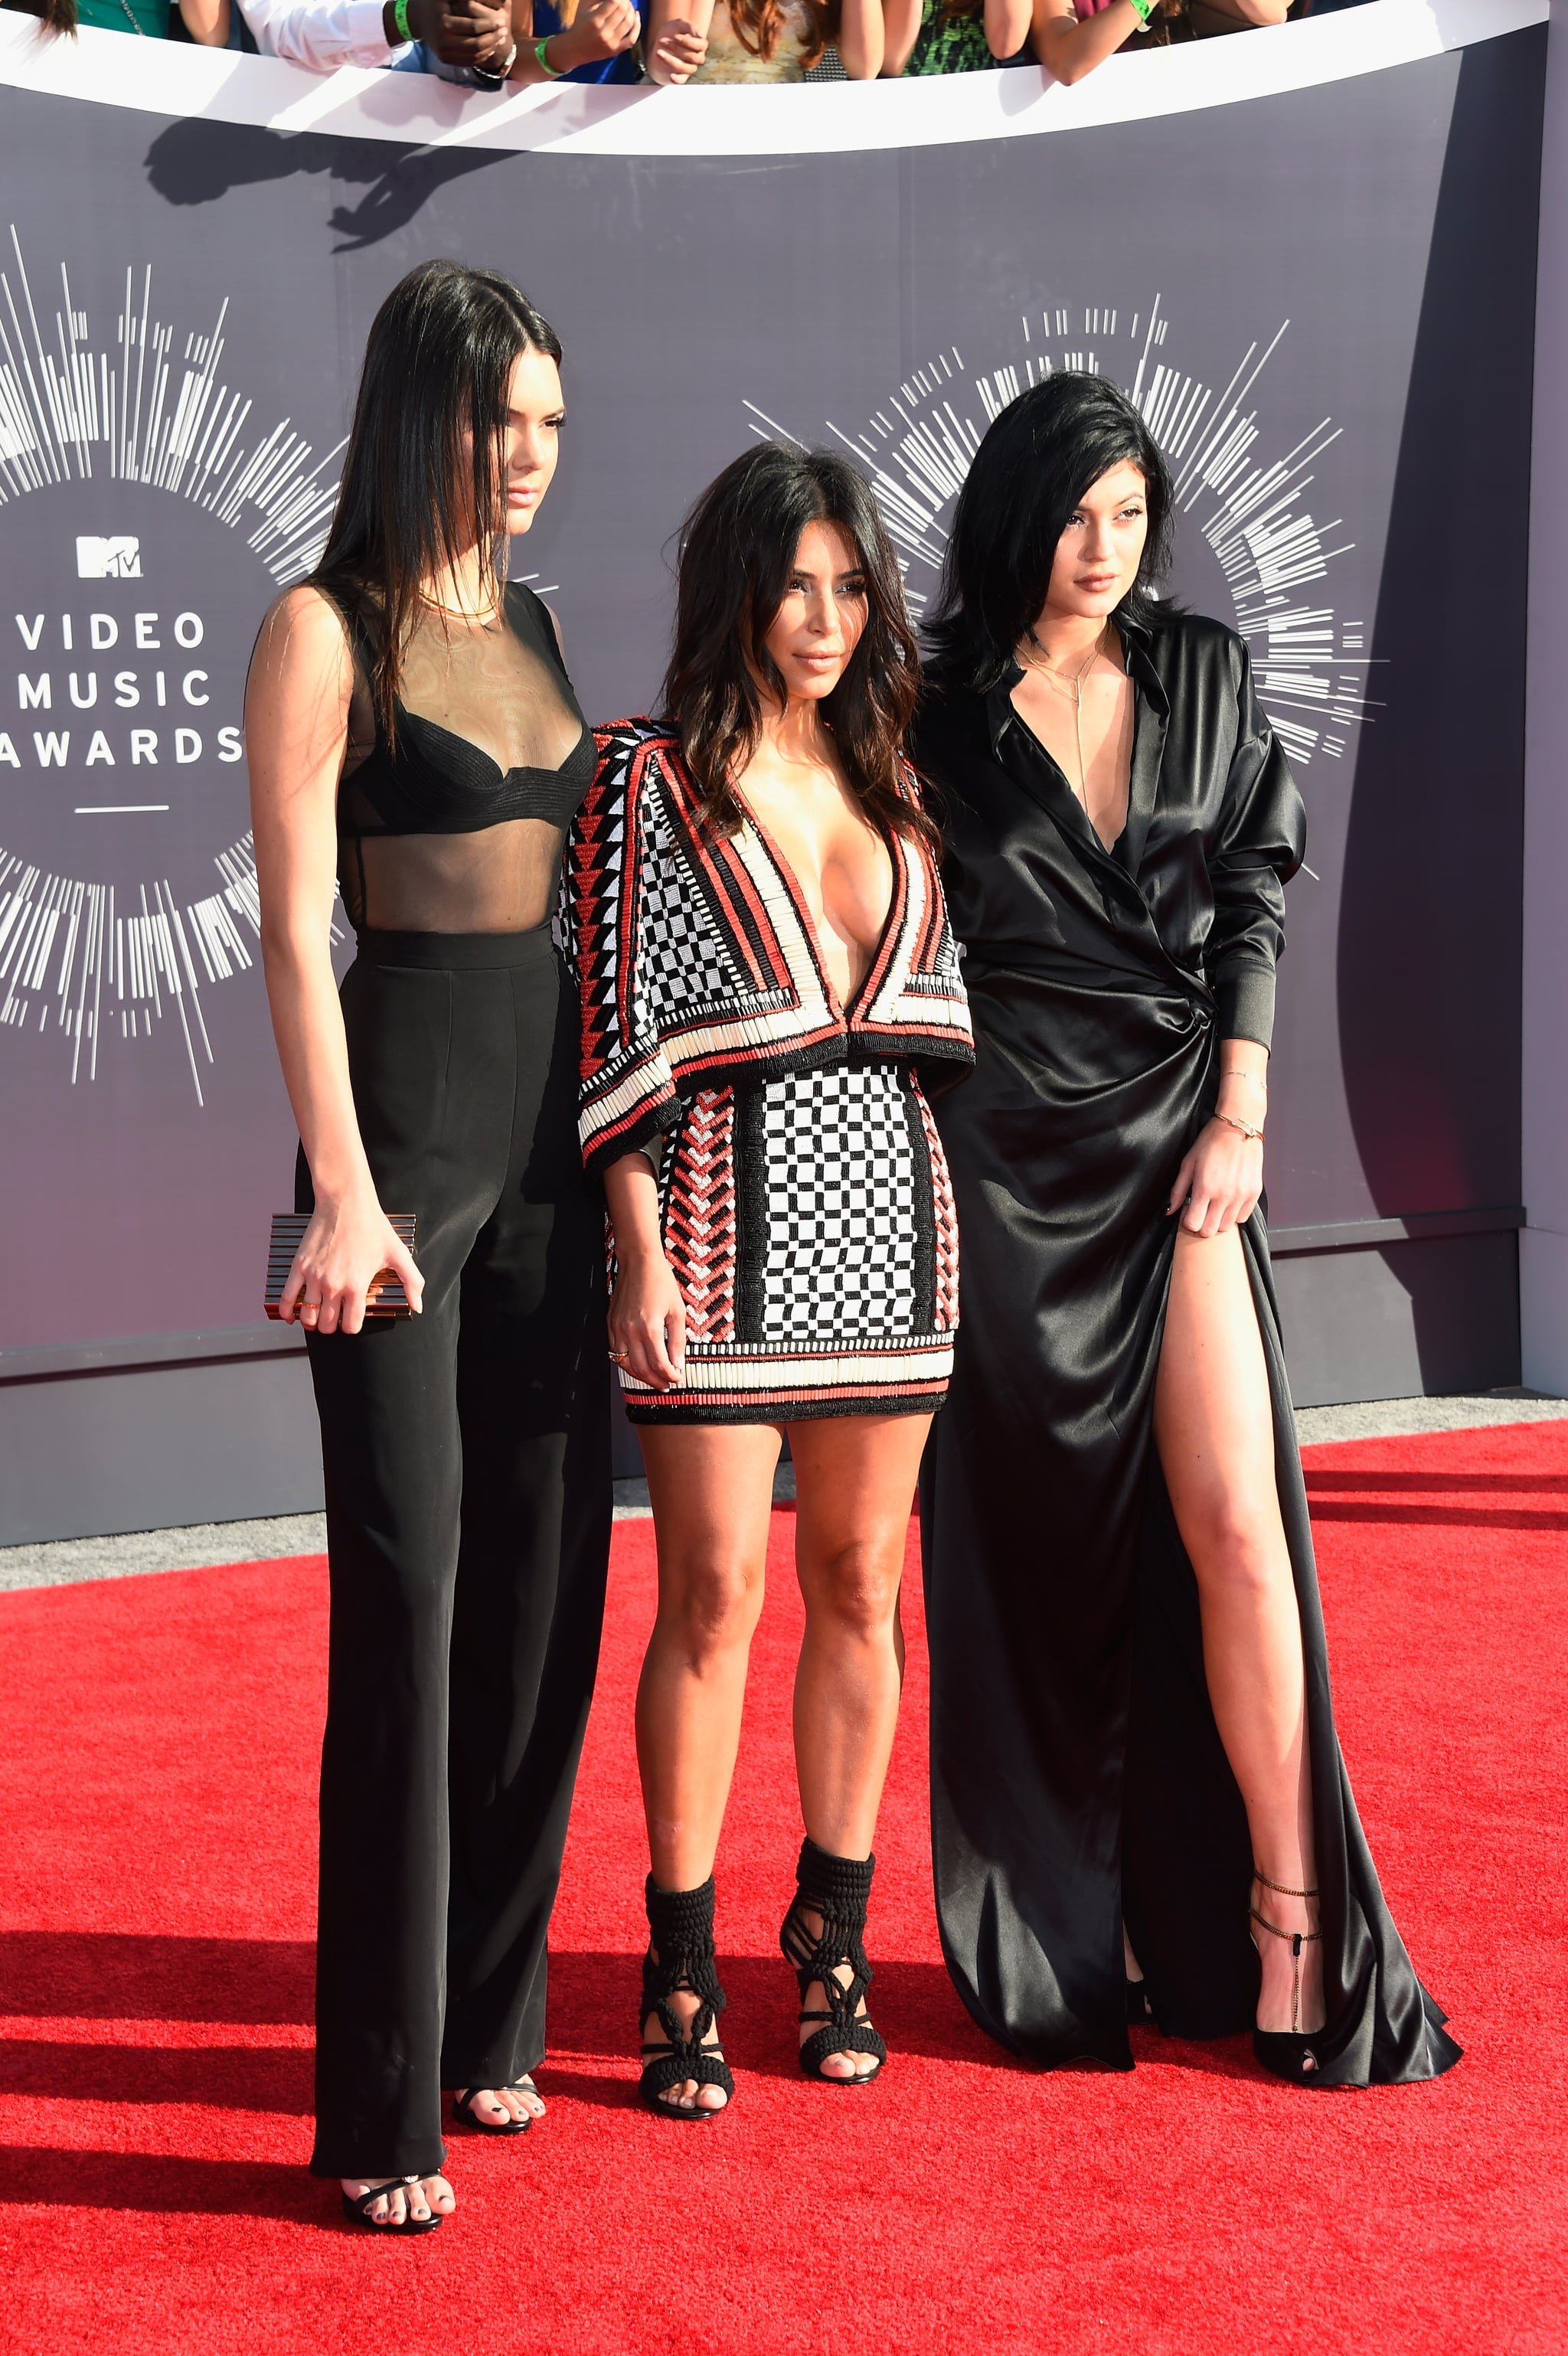 The Kardashians Dominate the VMAs Red Carpet